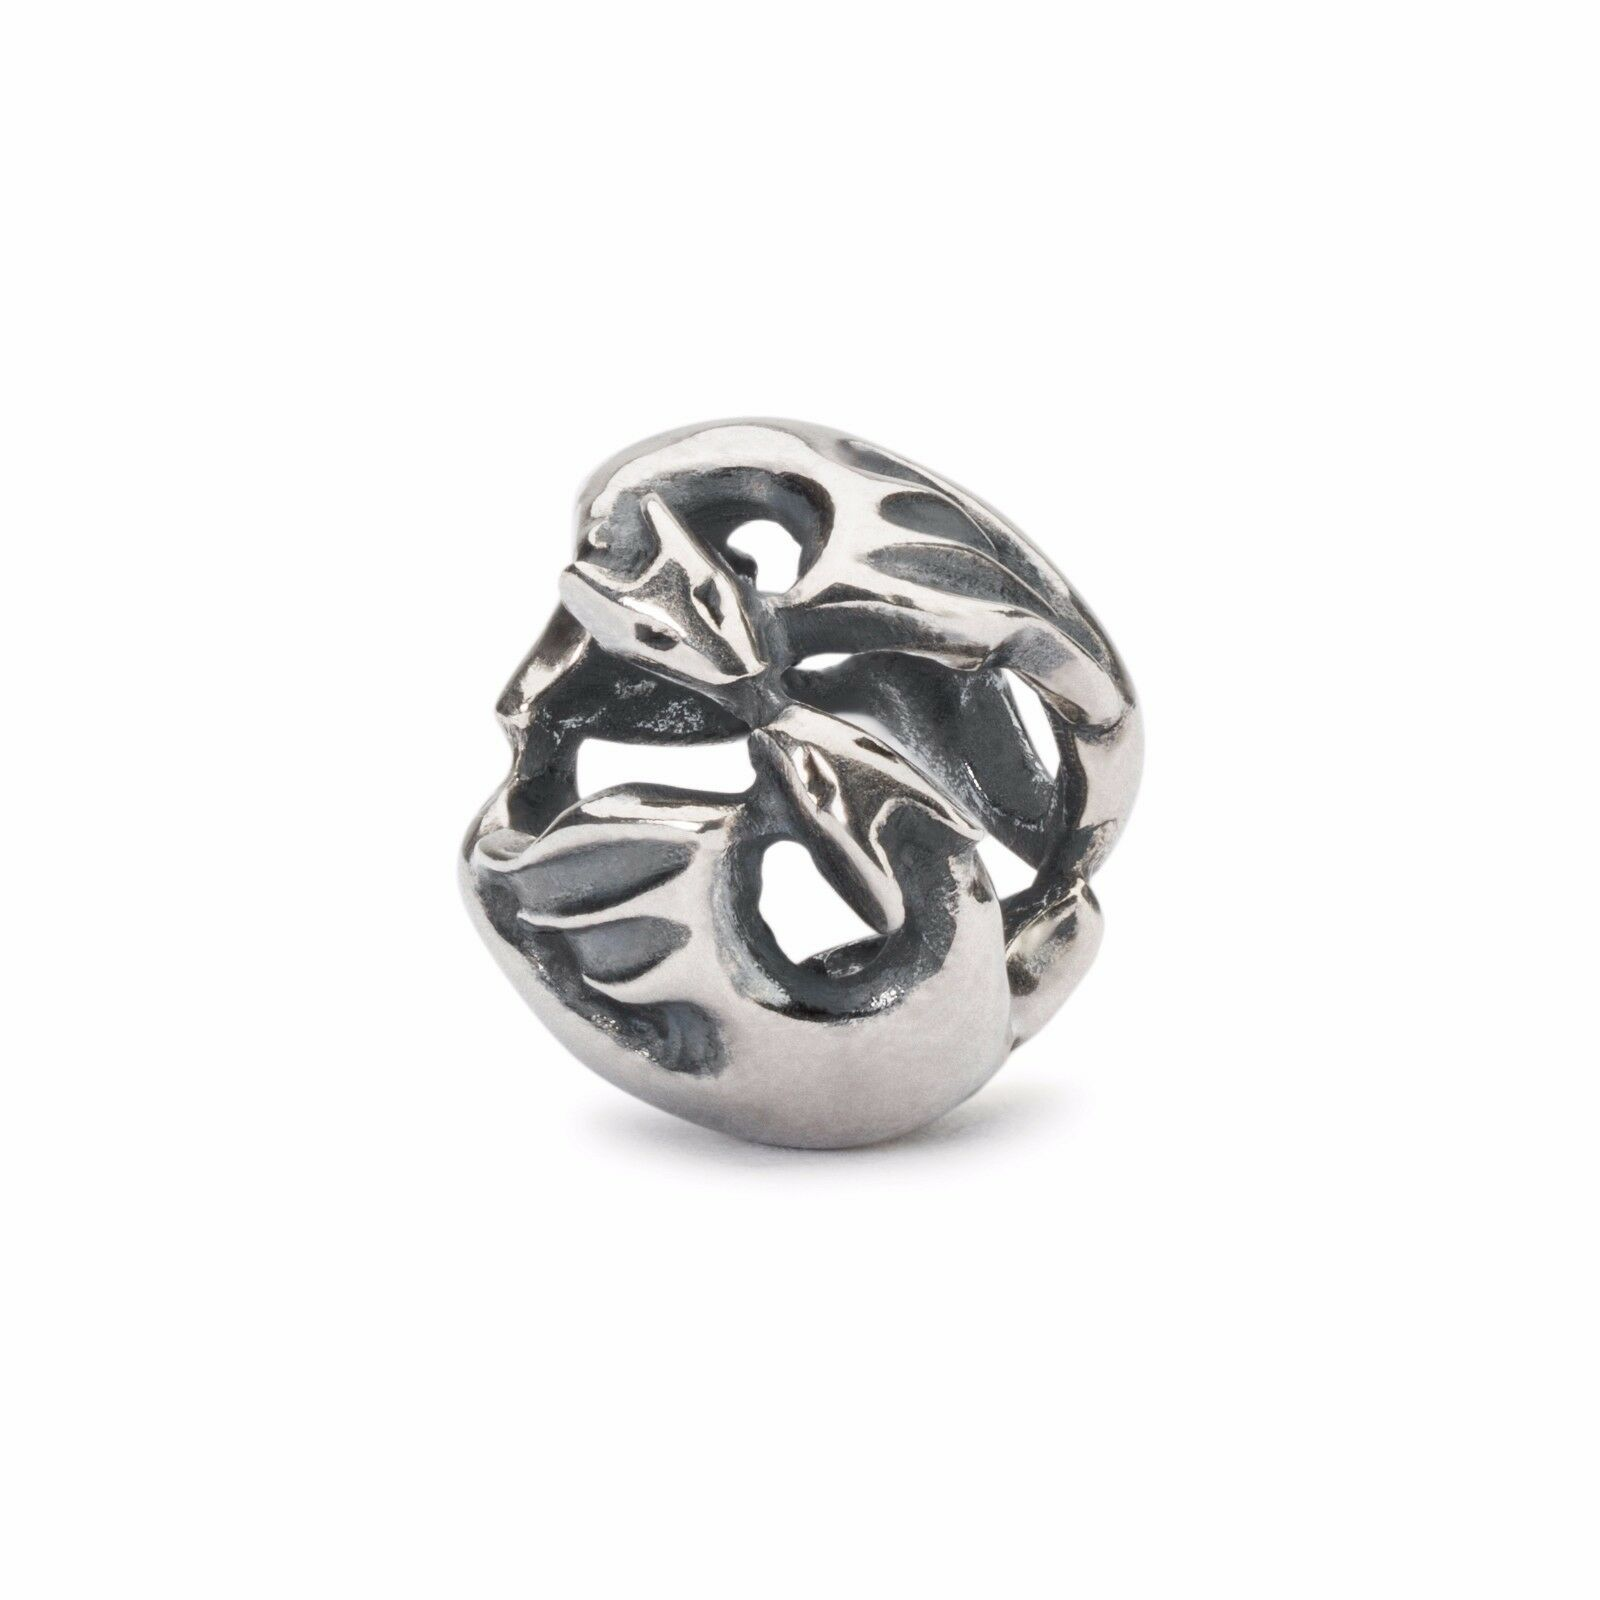 AUTHENTIC TROLLBEADS DANCING DRAGONS TAGBE-10186 DRAGONI DANZANTI